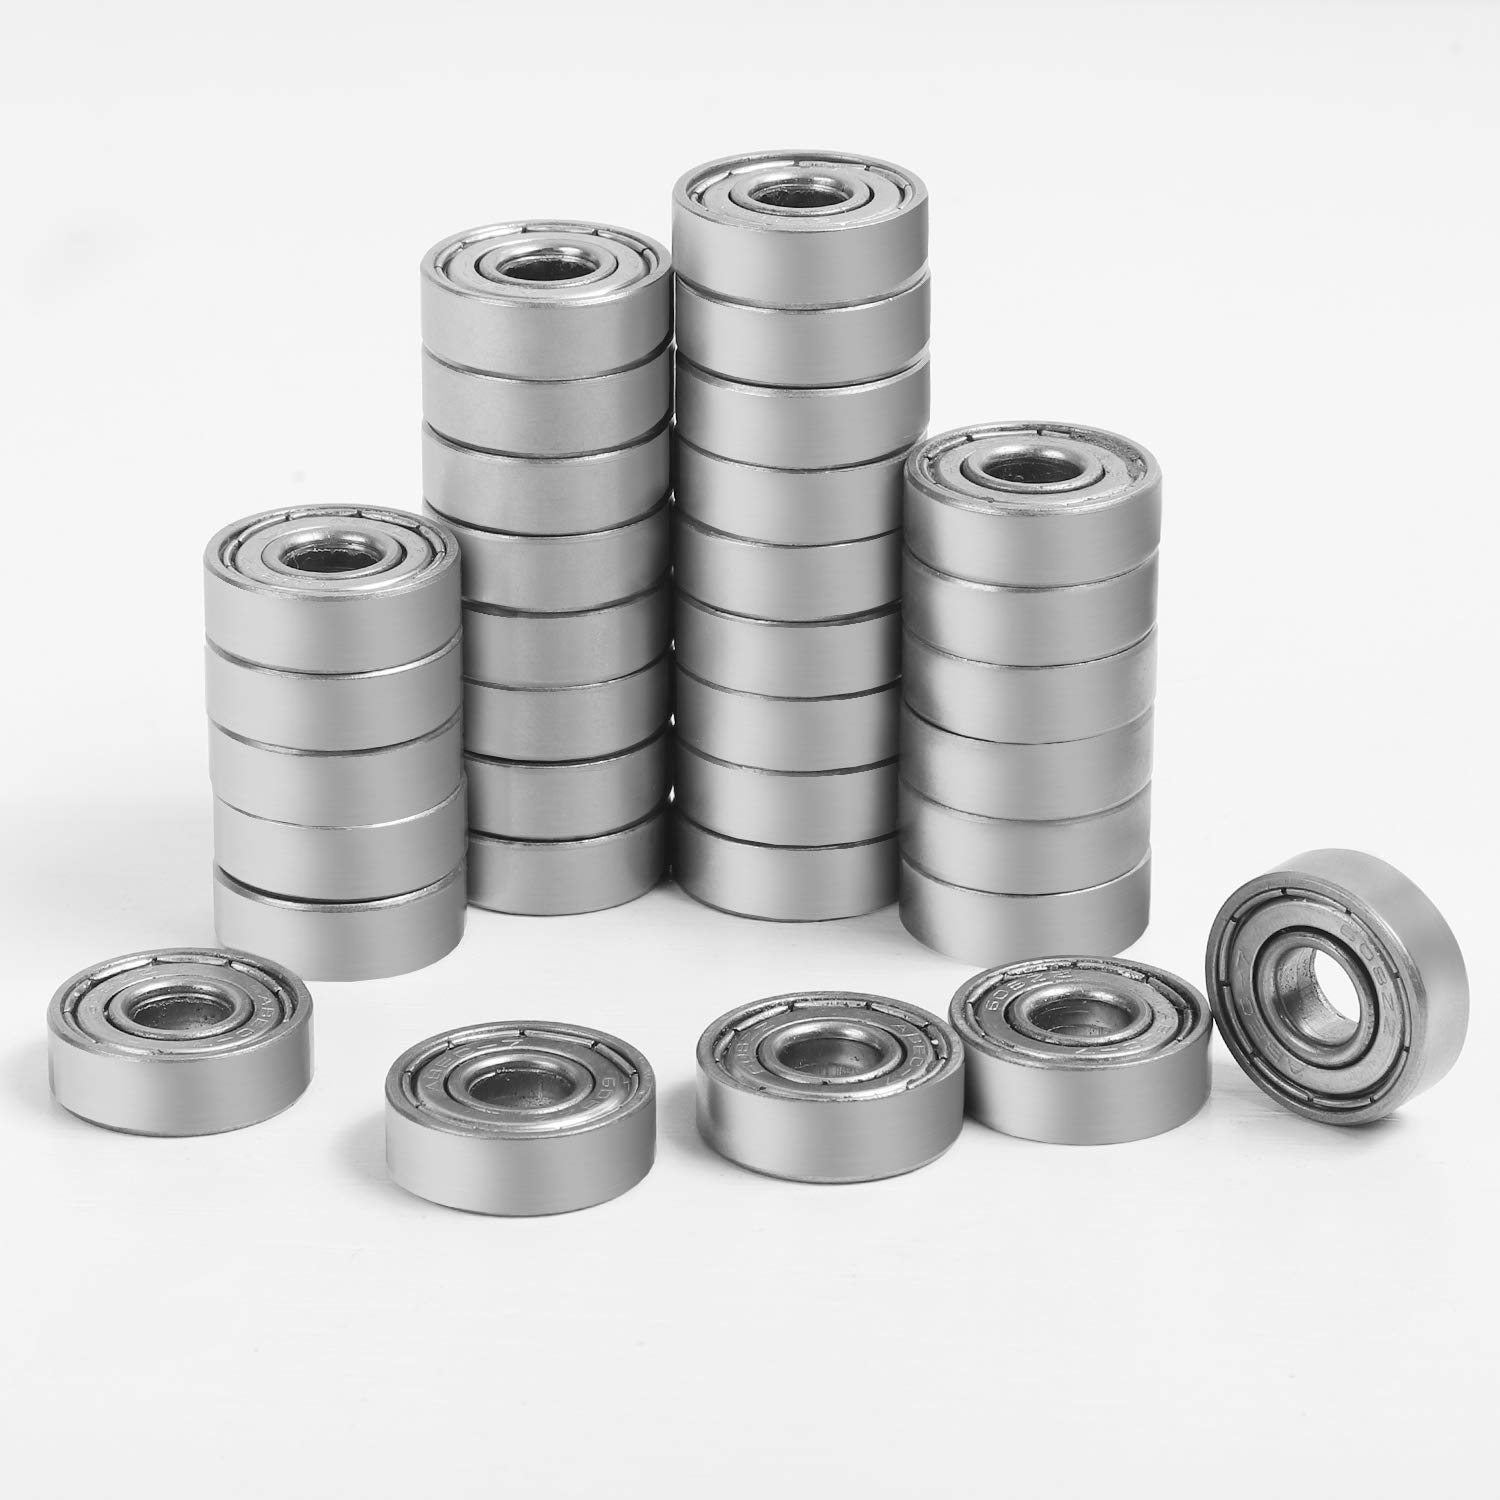 Smooth and Durable Double Shielded Skateboard Bearings Longboards 8x22x7 High-Speed Roller Bearings for Scooters KEILEOHO 120 PCS 608 ZZ Miniature Ball Bearings Roller Skates Mini Cruisers